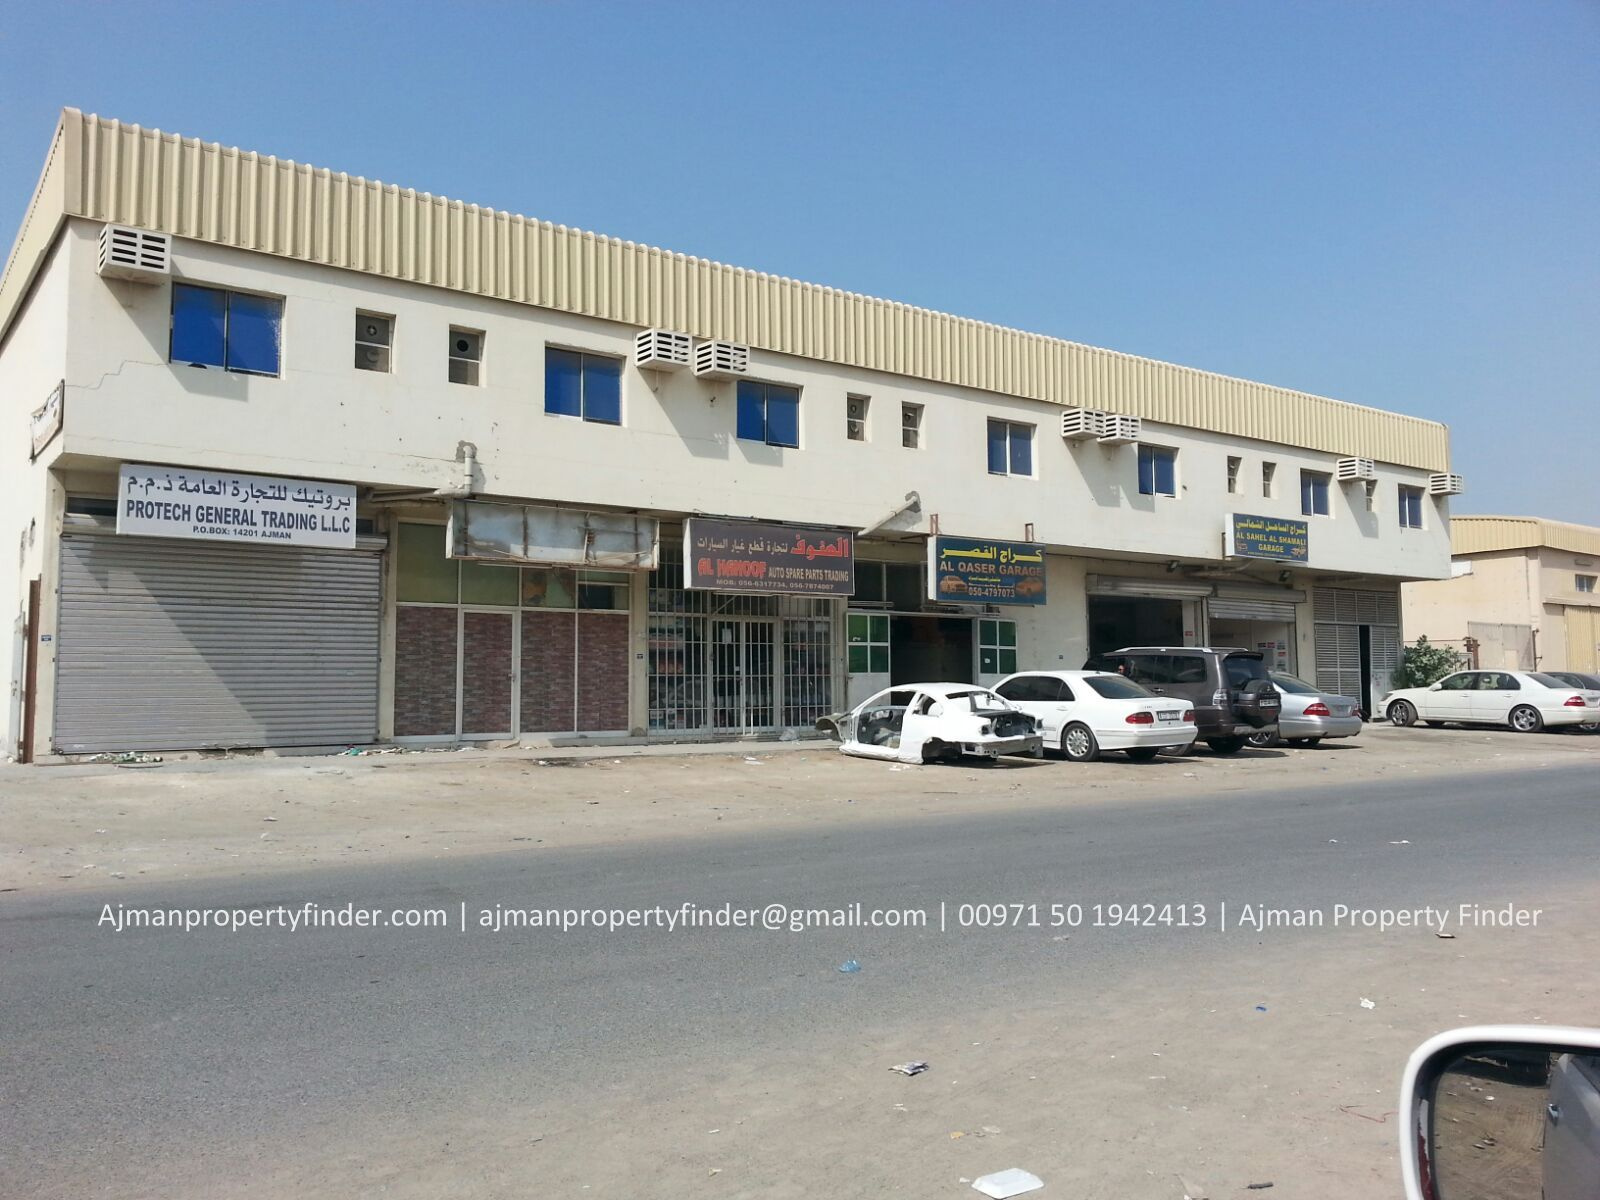 1700 Sqft Small Warehouse for Rent in Ajman | Al Jurf Area – Without Electricity for Storage Purpose